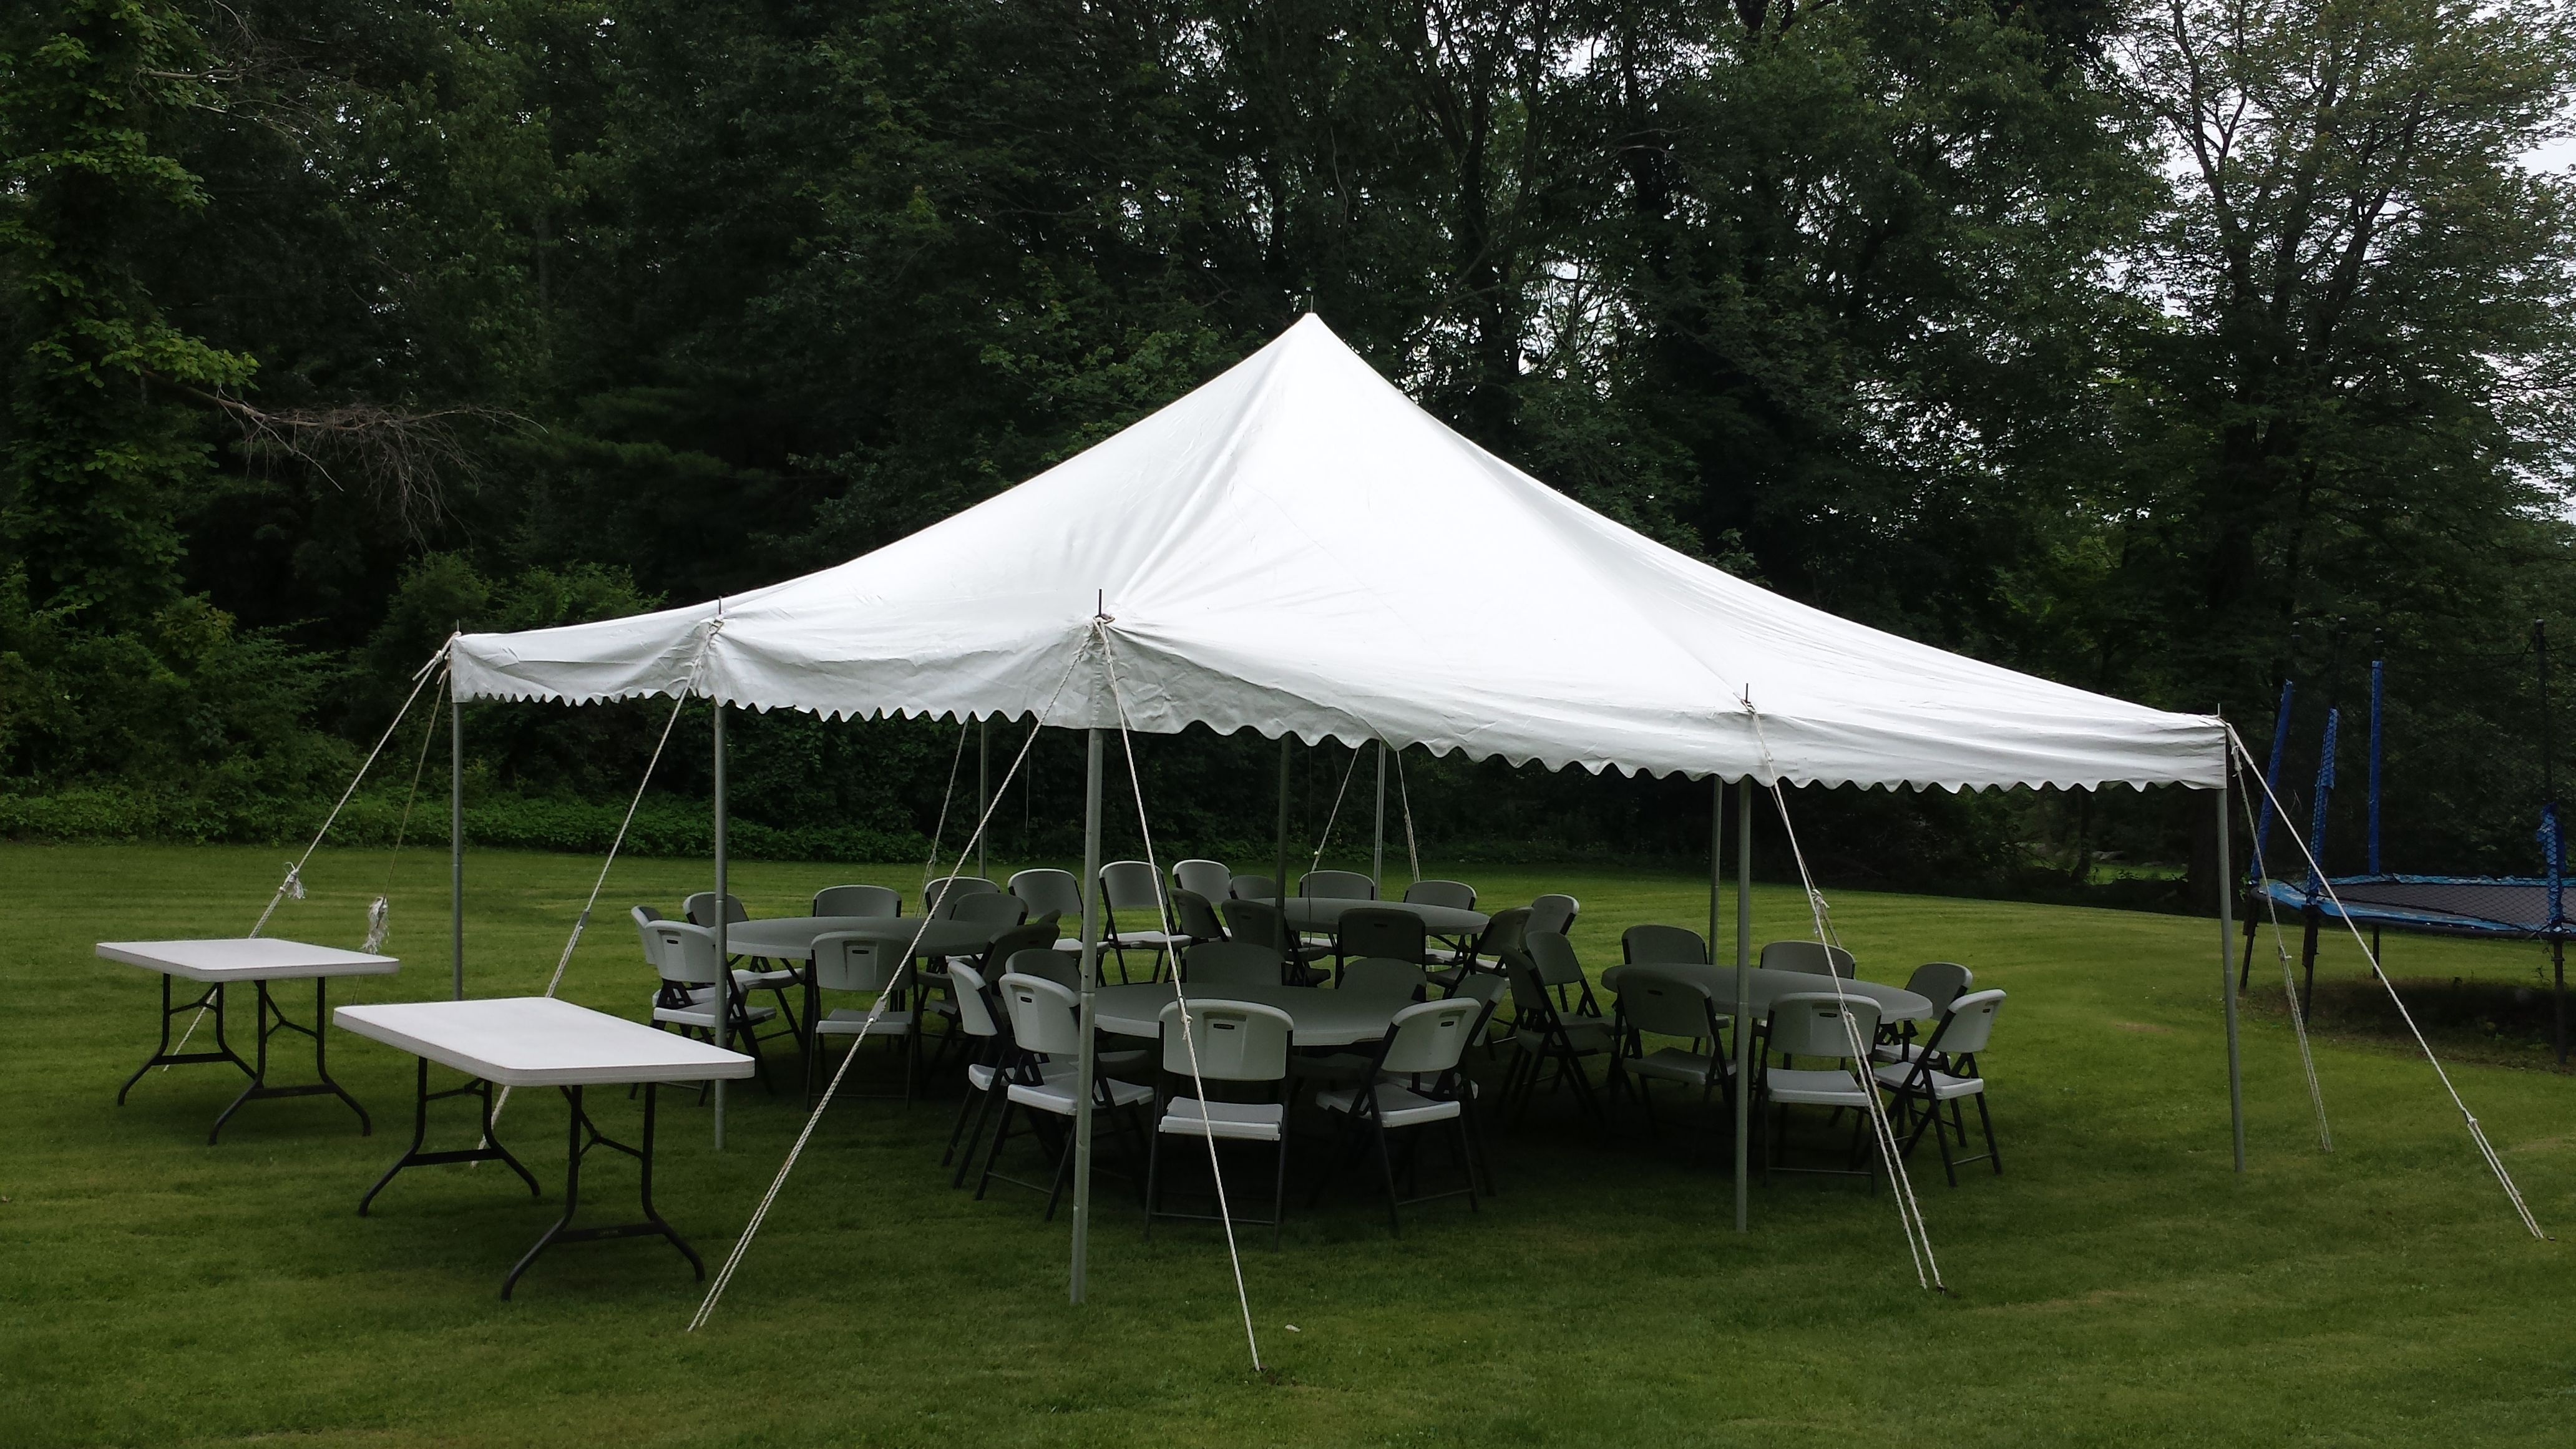 Graduation Party Package #2 - INCLUDES Tent Setup, tent, table, chairs, more